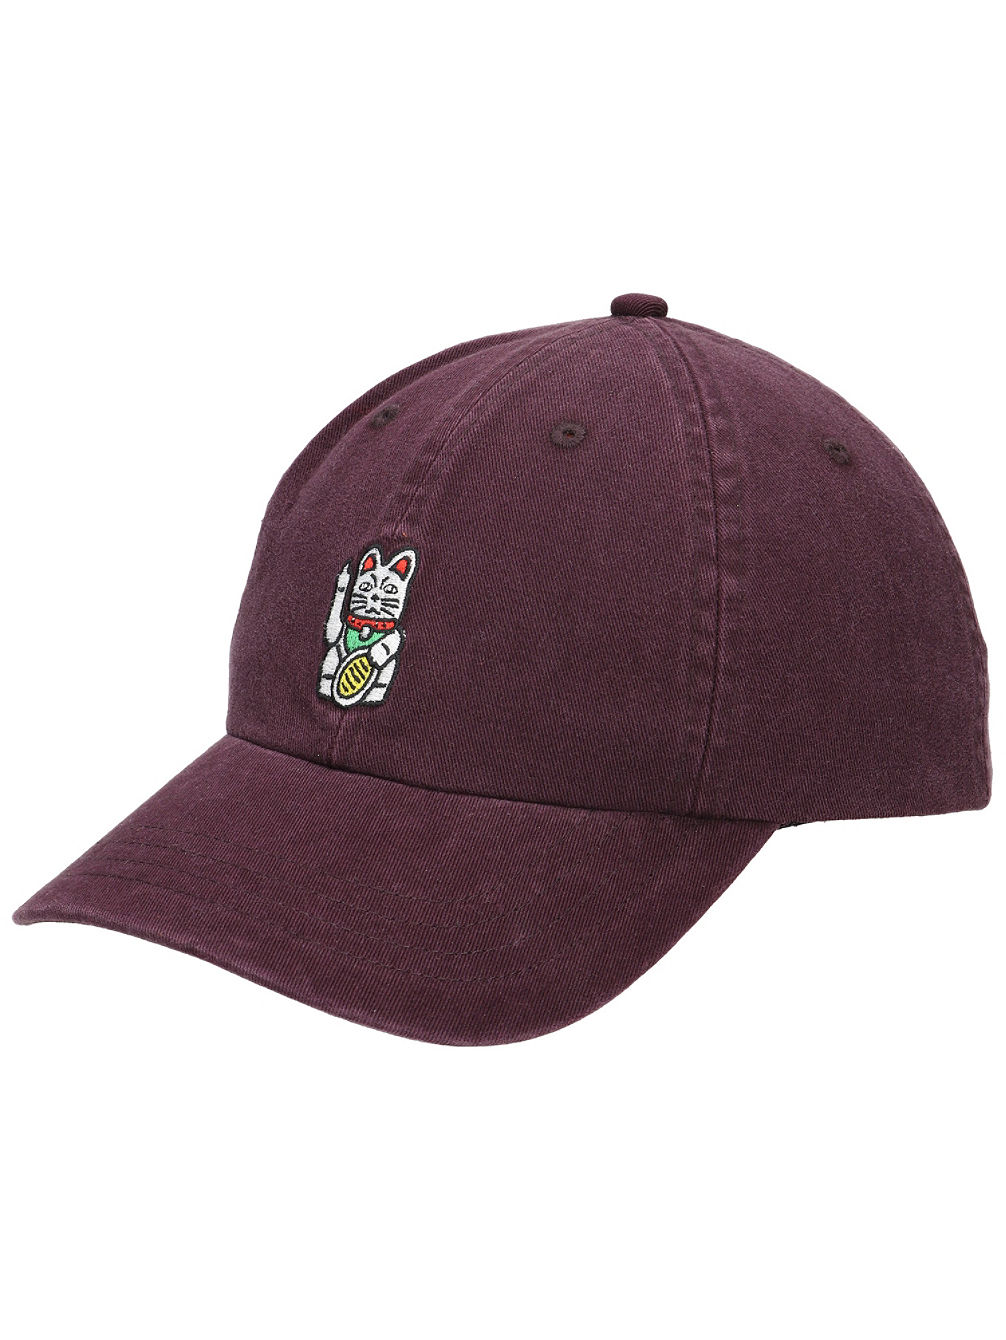 aa5a90a48cc80 Buy Iriedaily Bye Bye Dad Cap online at Blue Tomato